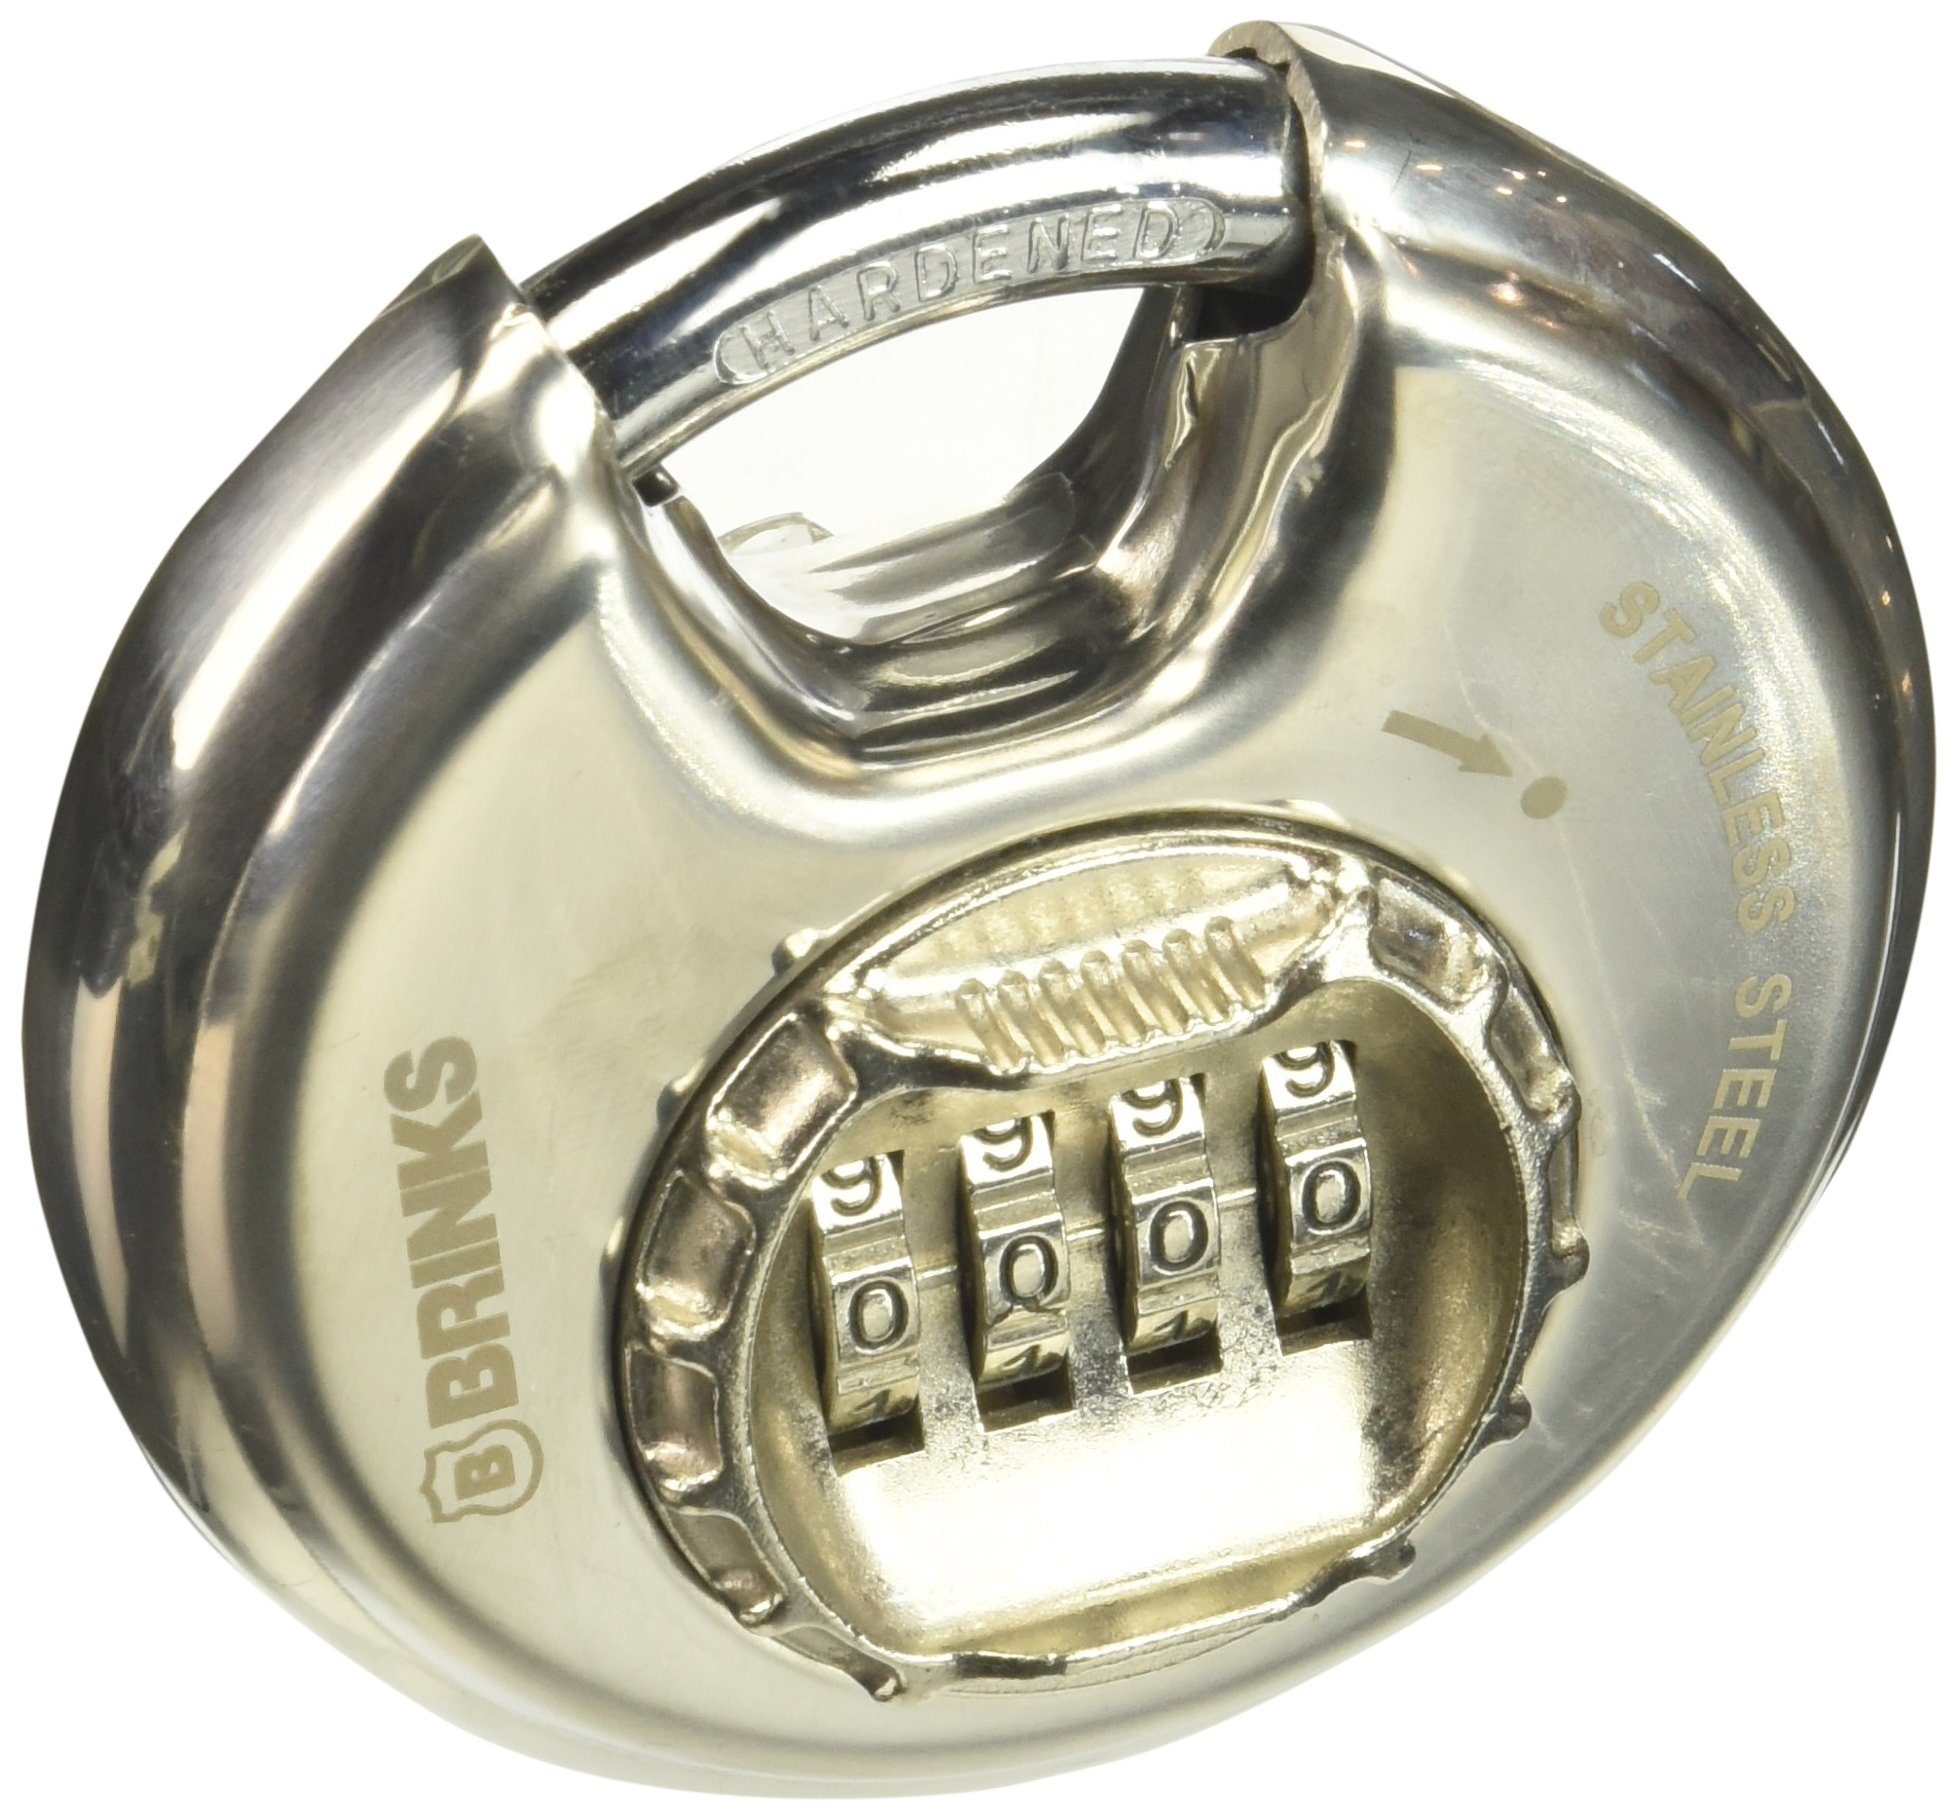 BRINKS 173-80051 80mm Stainless Steel Resettable Combination Discus Padlock by BRINKS